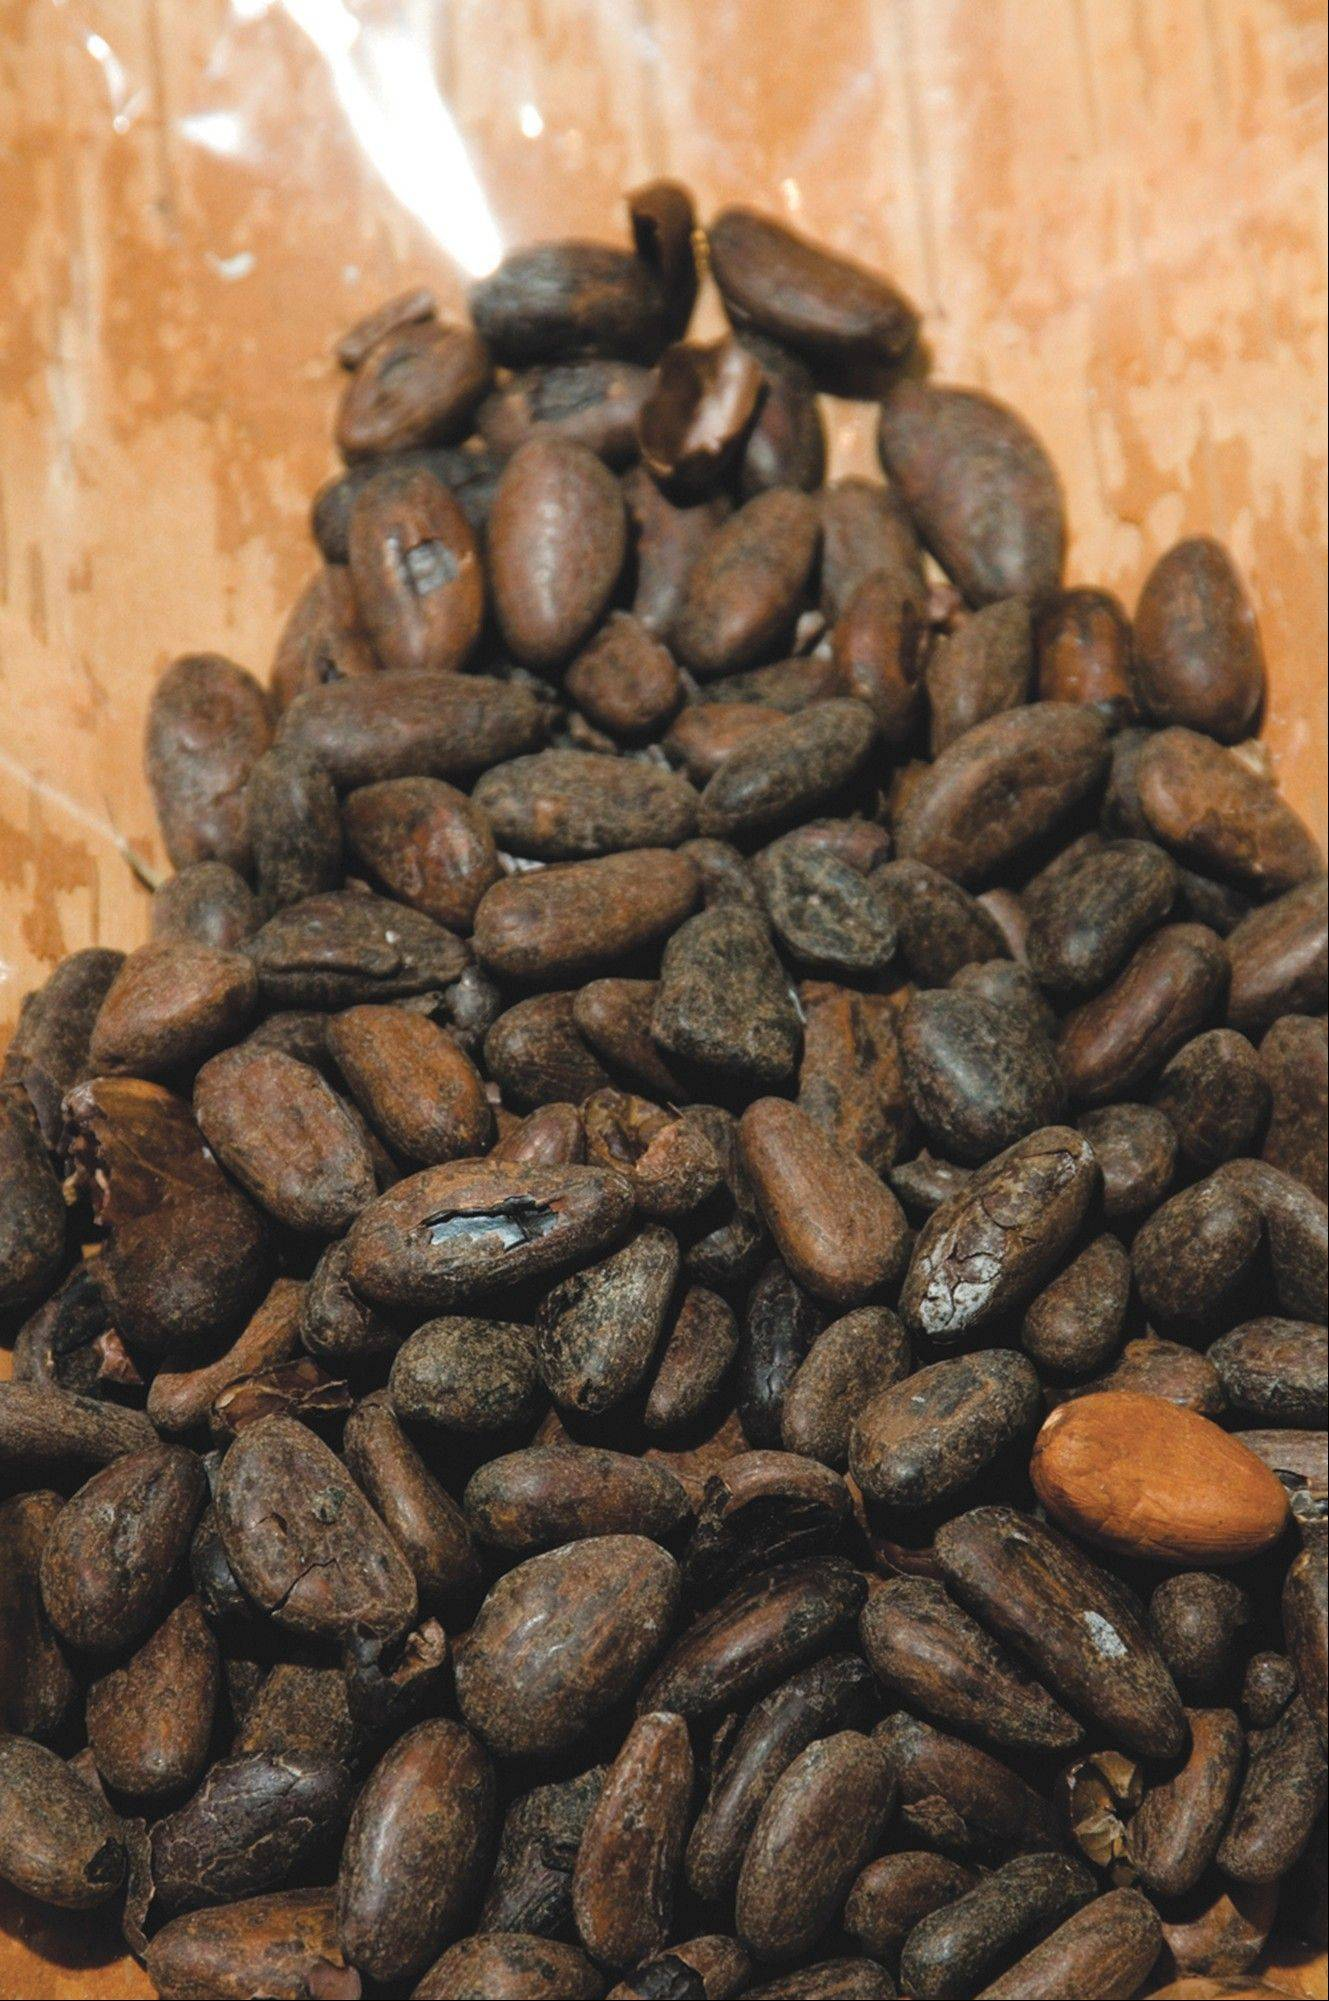 Cacao beans can be ground into nibs, a healthful chocolate alternative.